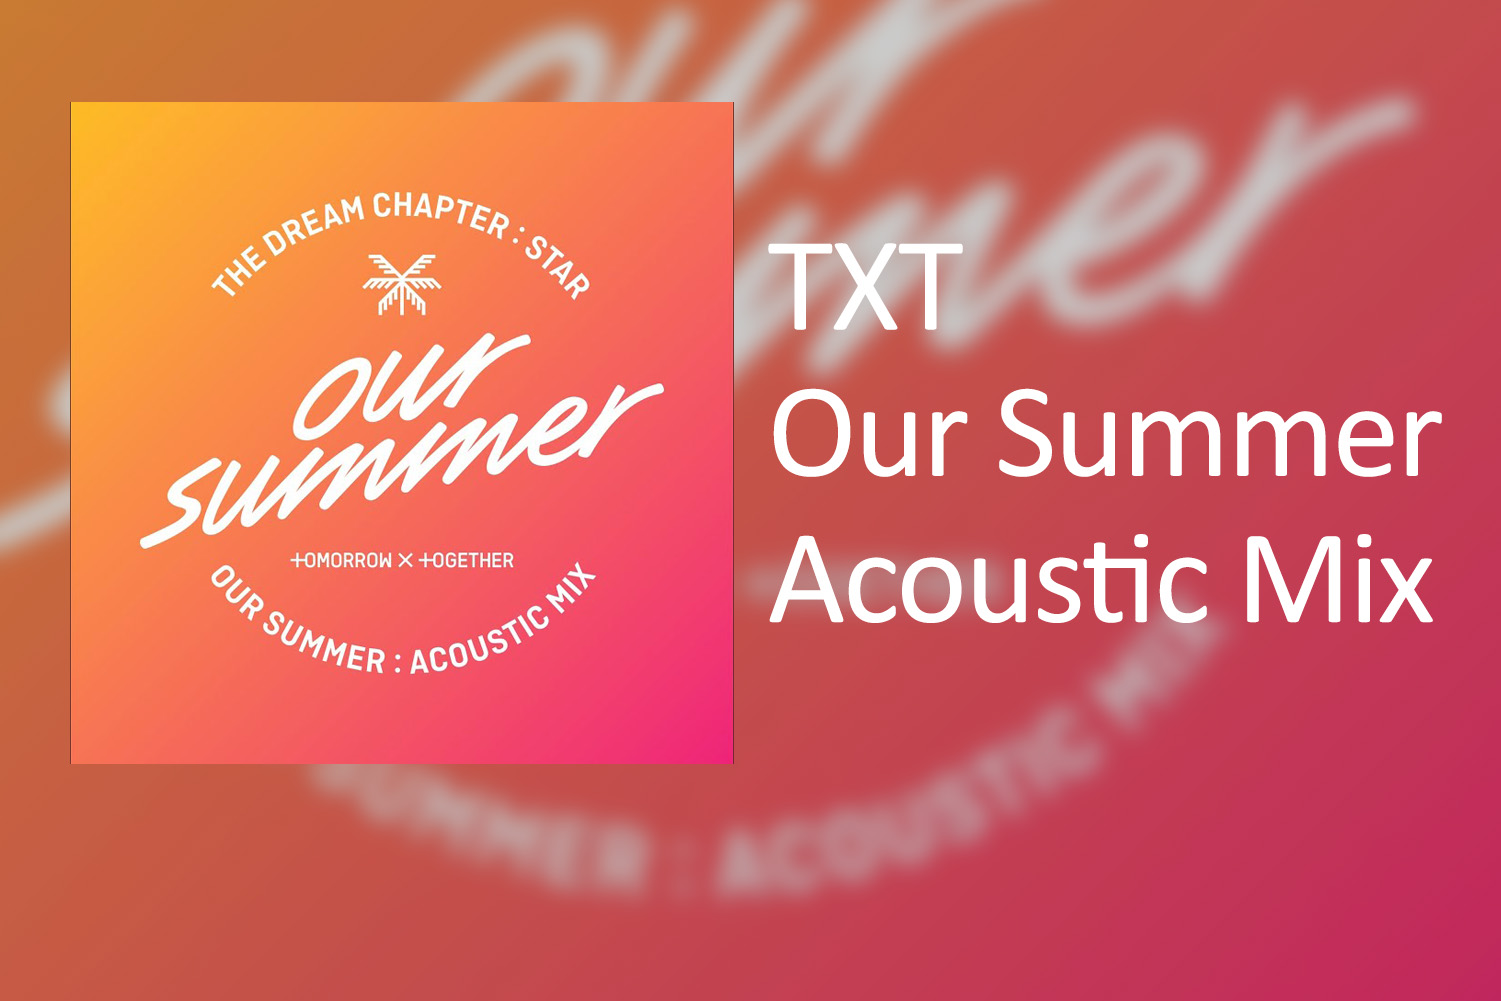 "Aside from the five songs on ""The Dream Chapter: Star"" and an English version of the childlike rap song ""Cat and Dog,"" there has been radio silence of a new TXT release of any kind on social media. But on May 31, seemingly at random, they released an acoustic mix of ""Our Summer,"" another song on their first EP."